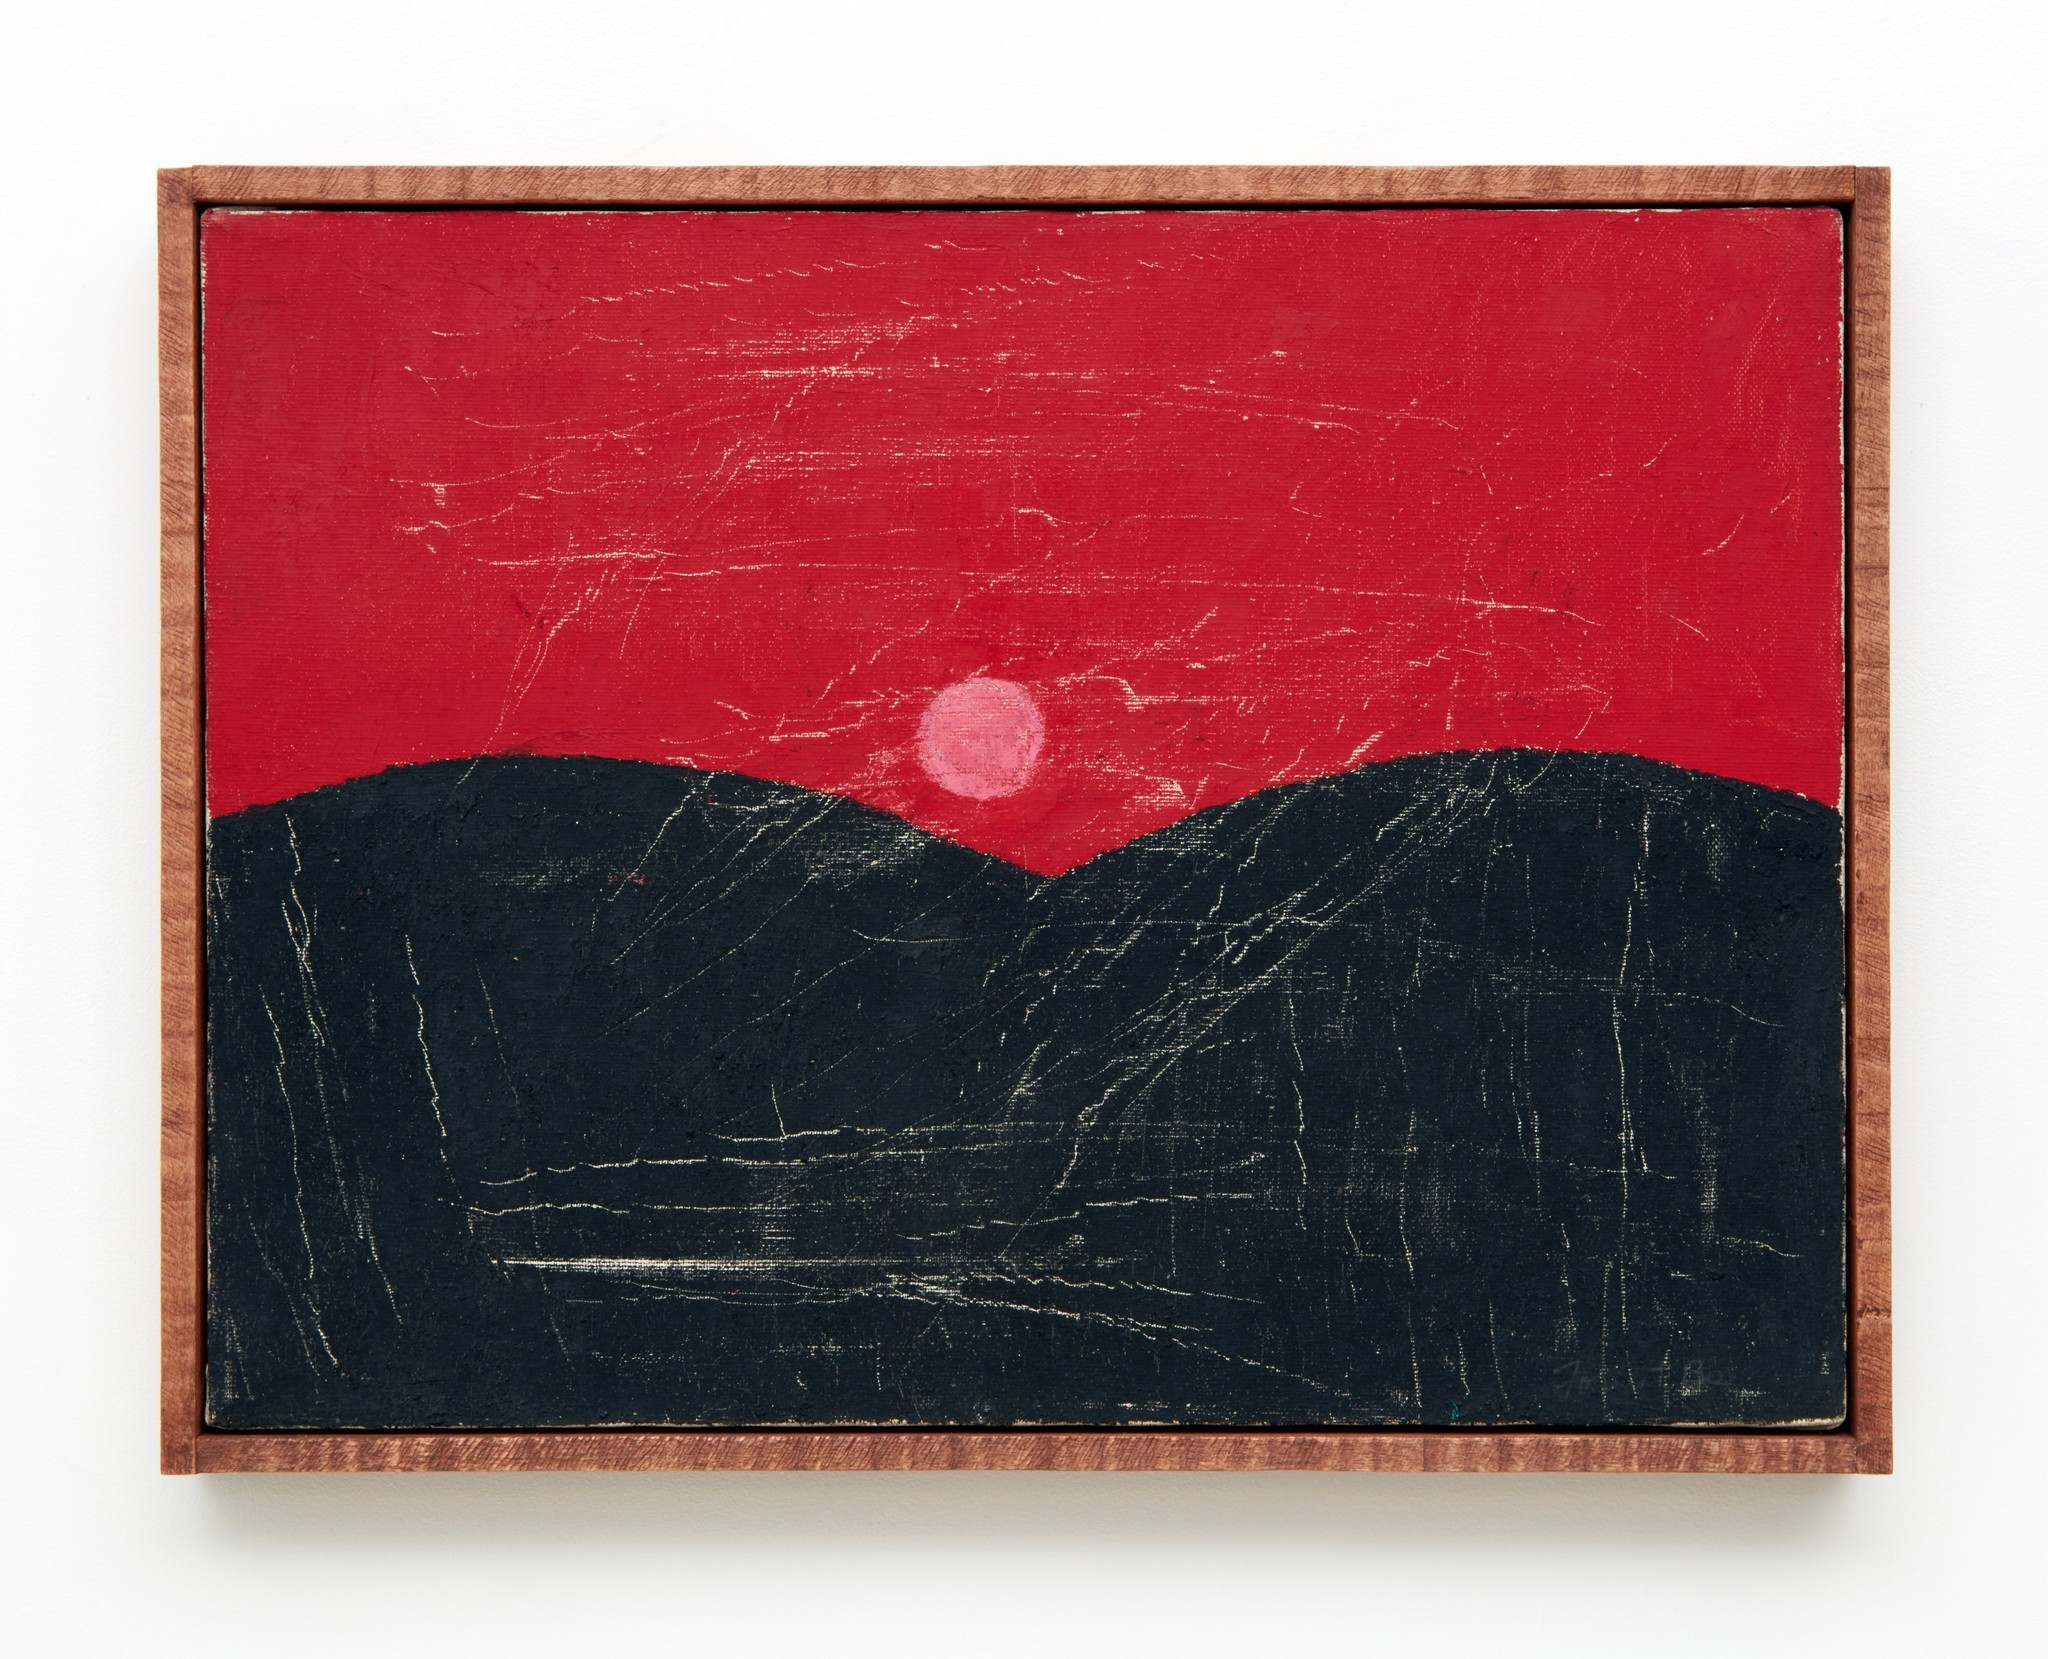 "Forrest Bess, ""Untitled (Pink Moon),"" oil on canvas in artist's frame, 12.75 inches by 16.75 inches."